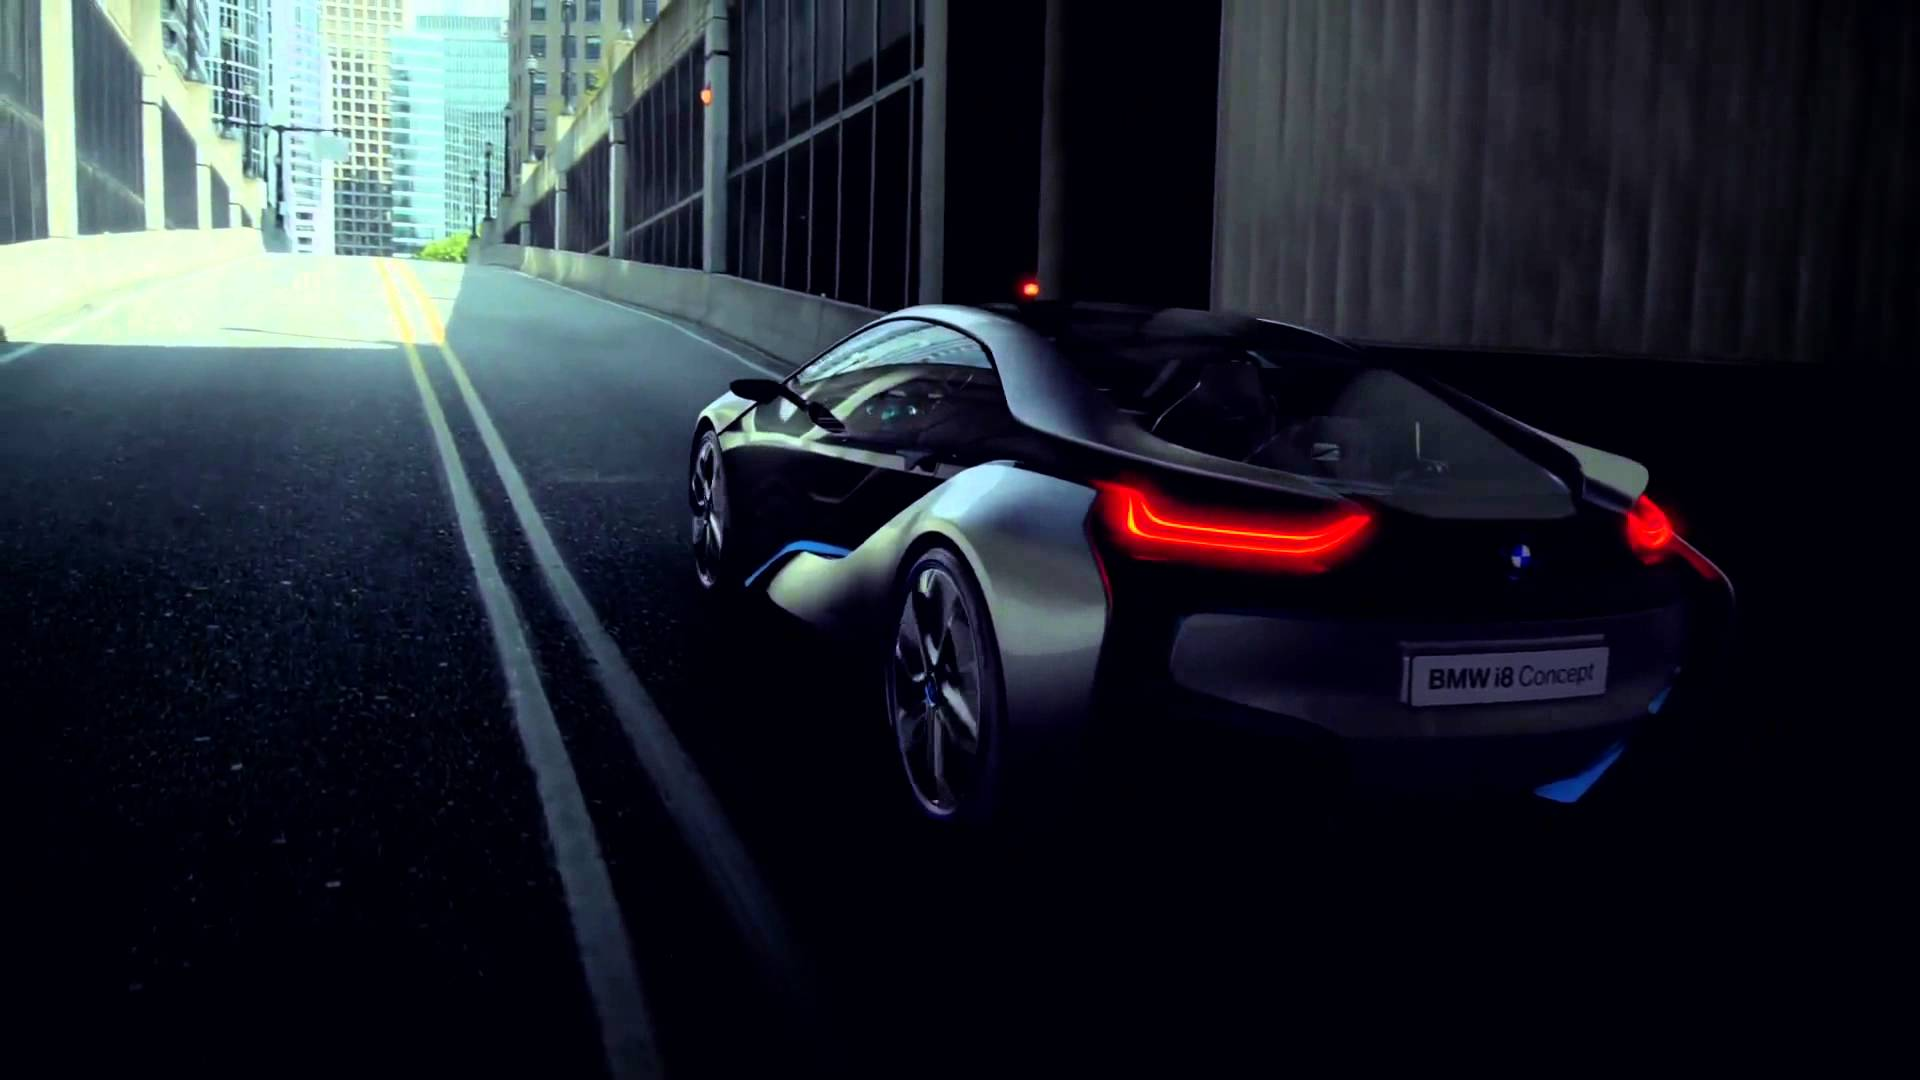 1920x1080 - BMW i3 Concept Wallpapers 17